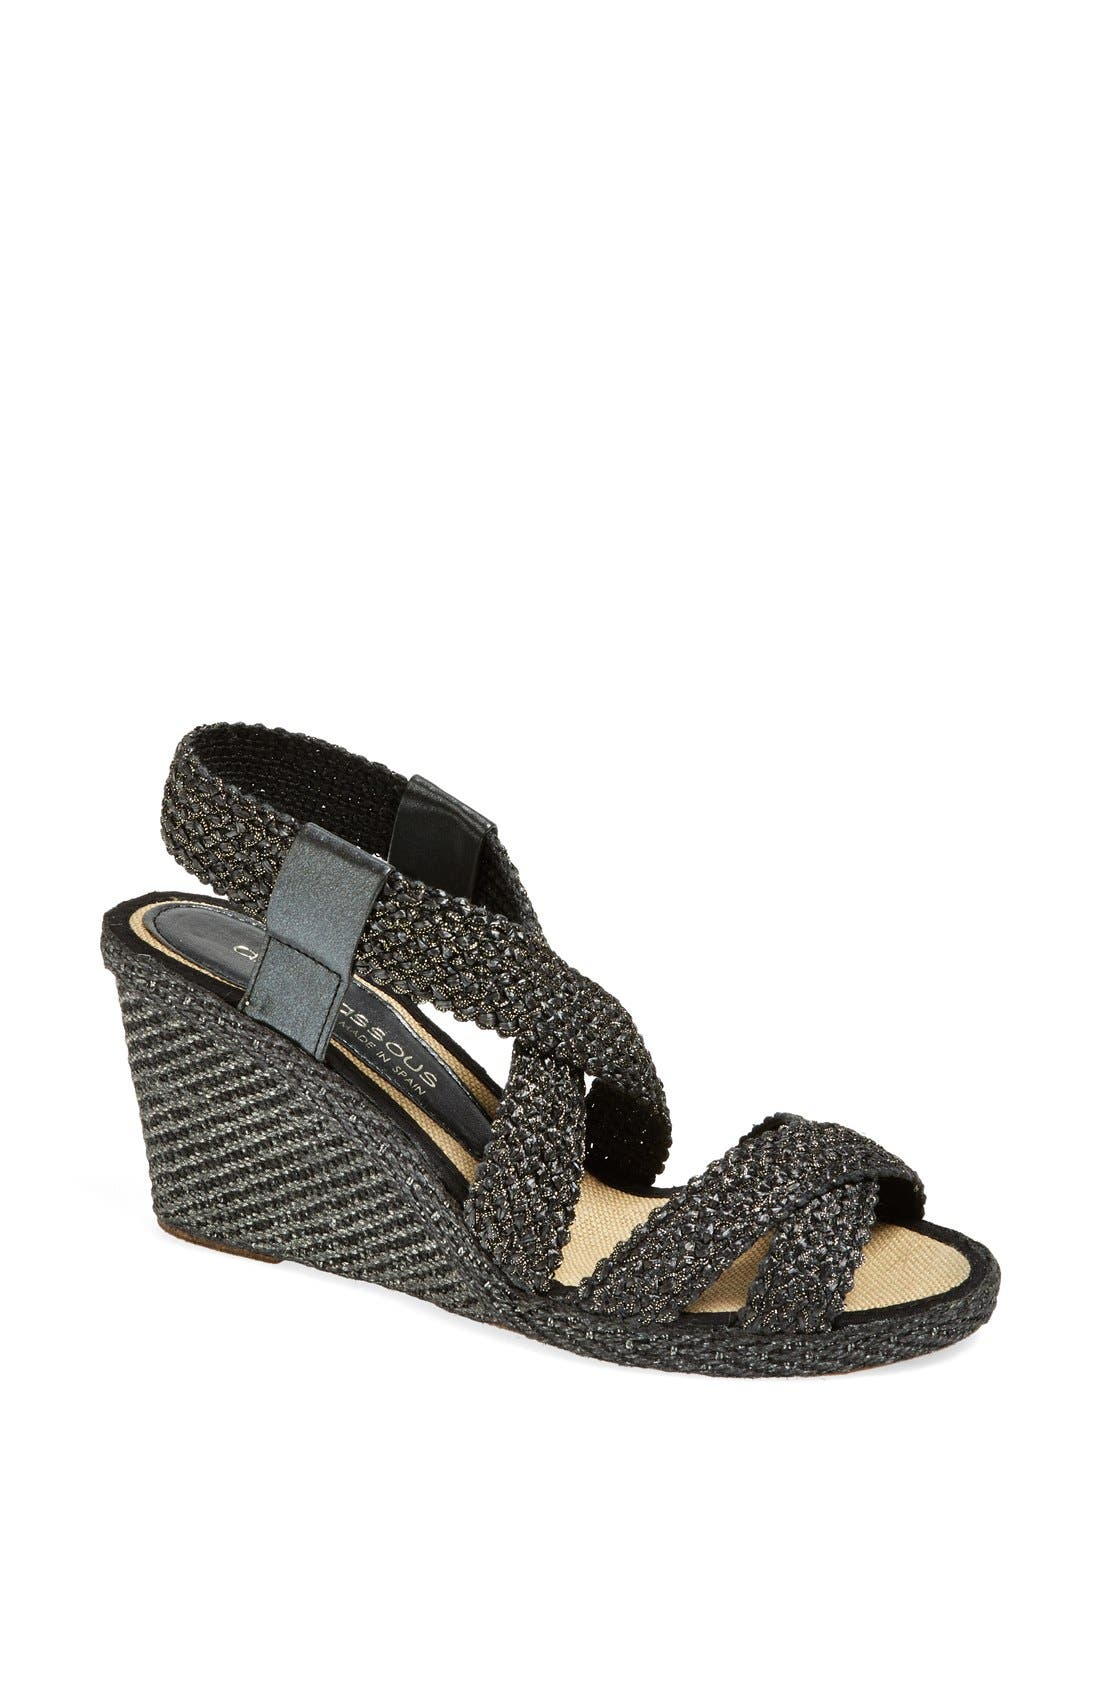 Alternate Image 1 Selected - André Assous 'Patty-A' Wedge Sandal